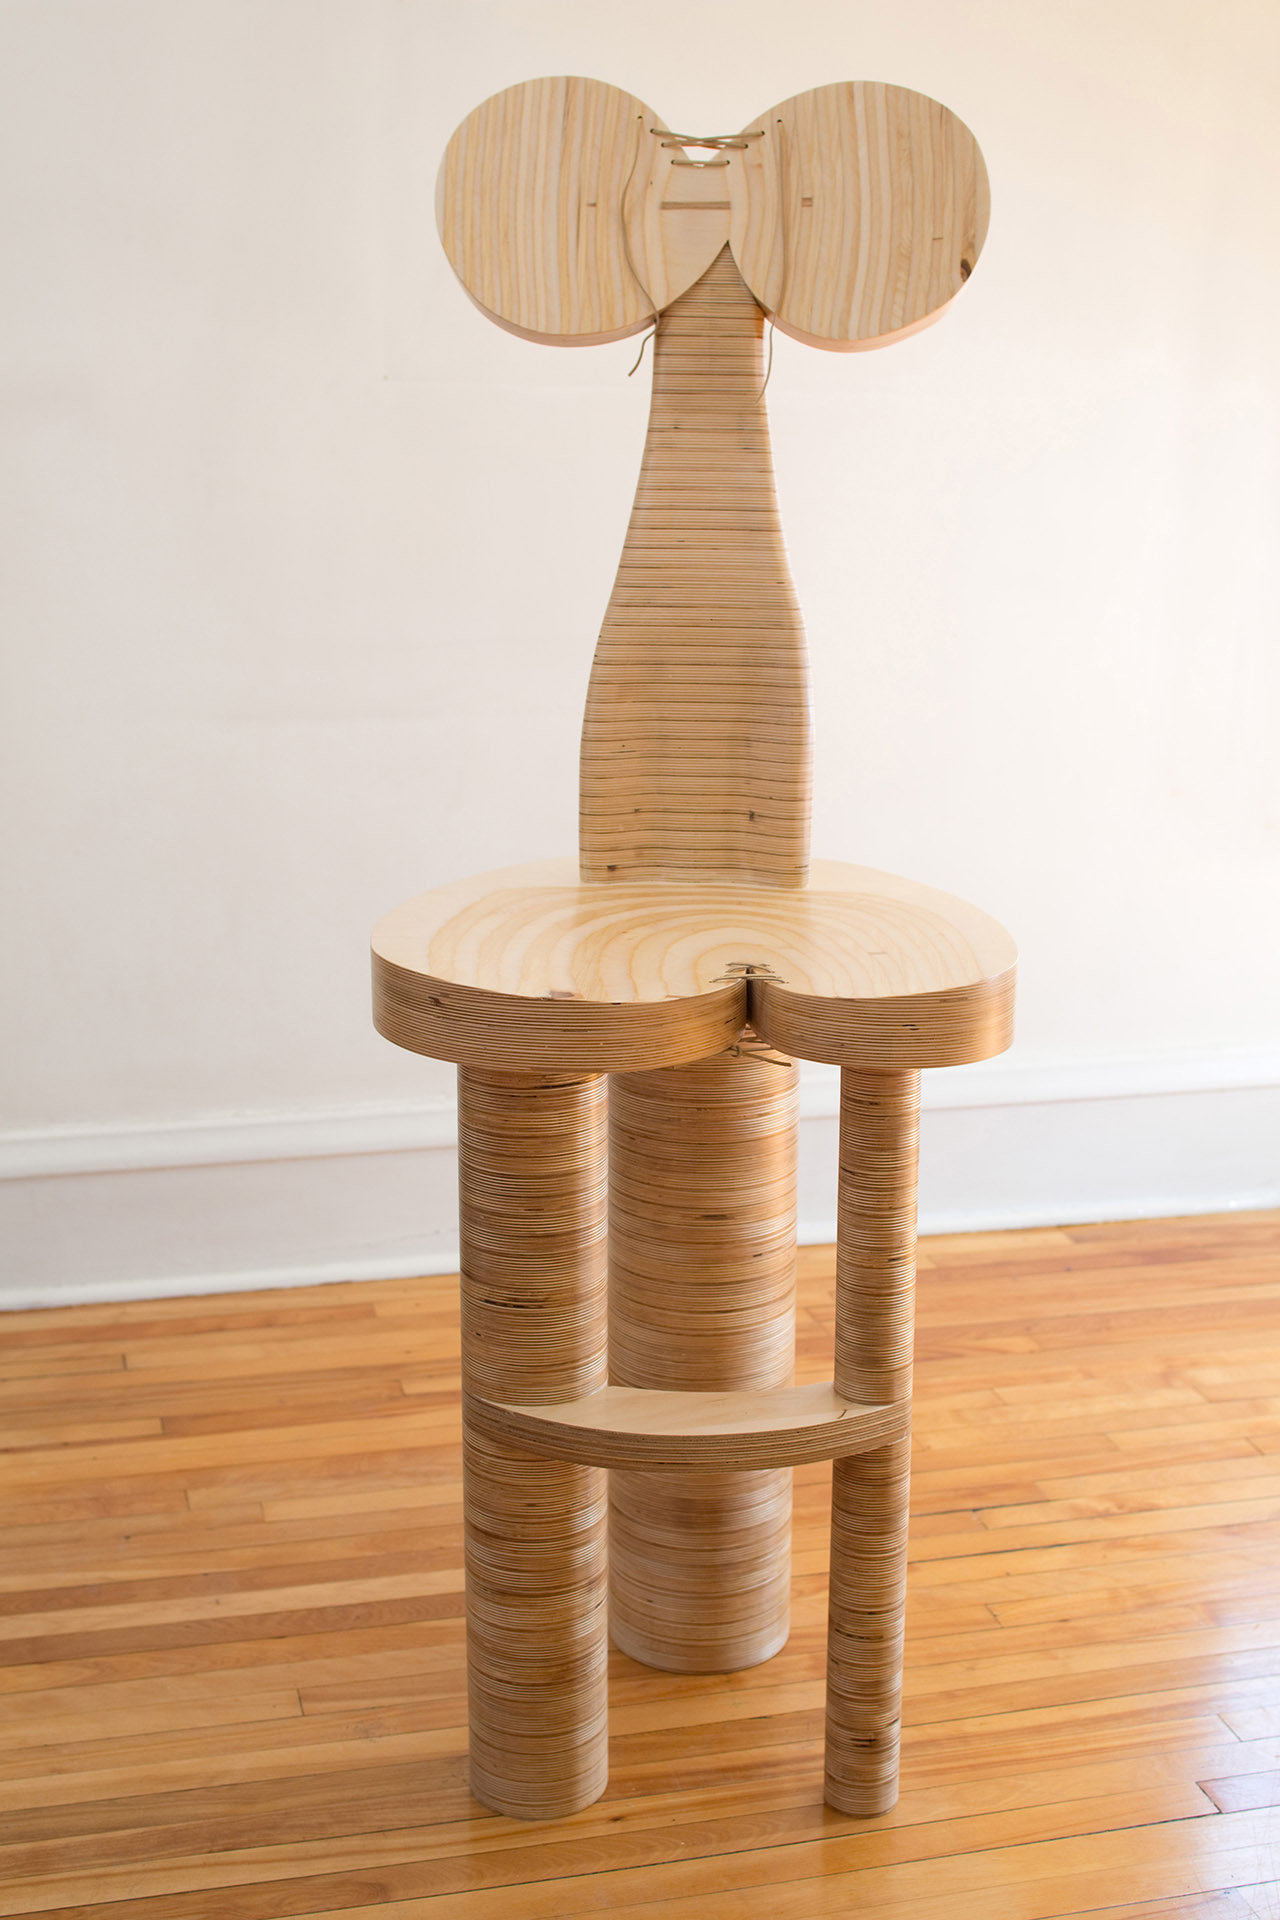 Dolores By Nathalie Guez Wood Chair Artful Home